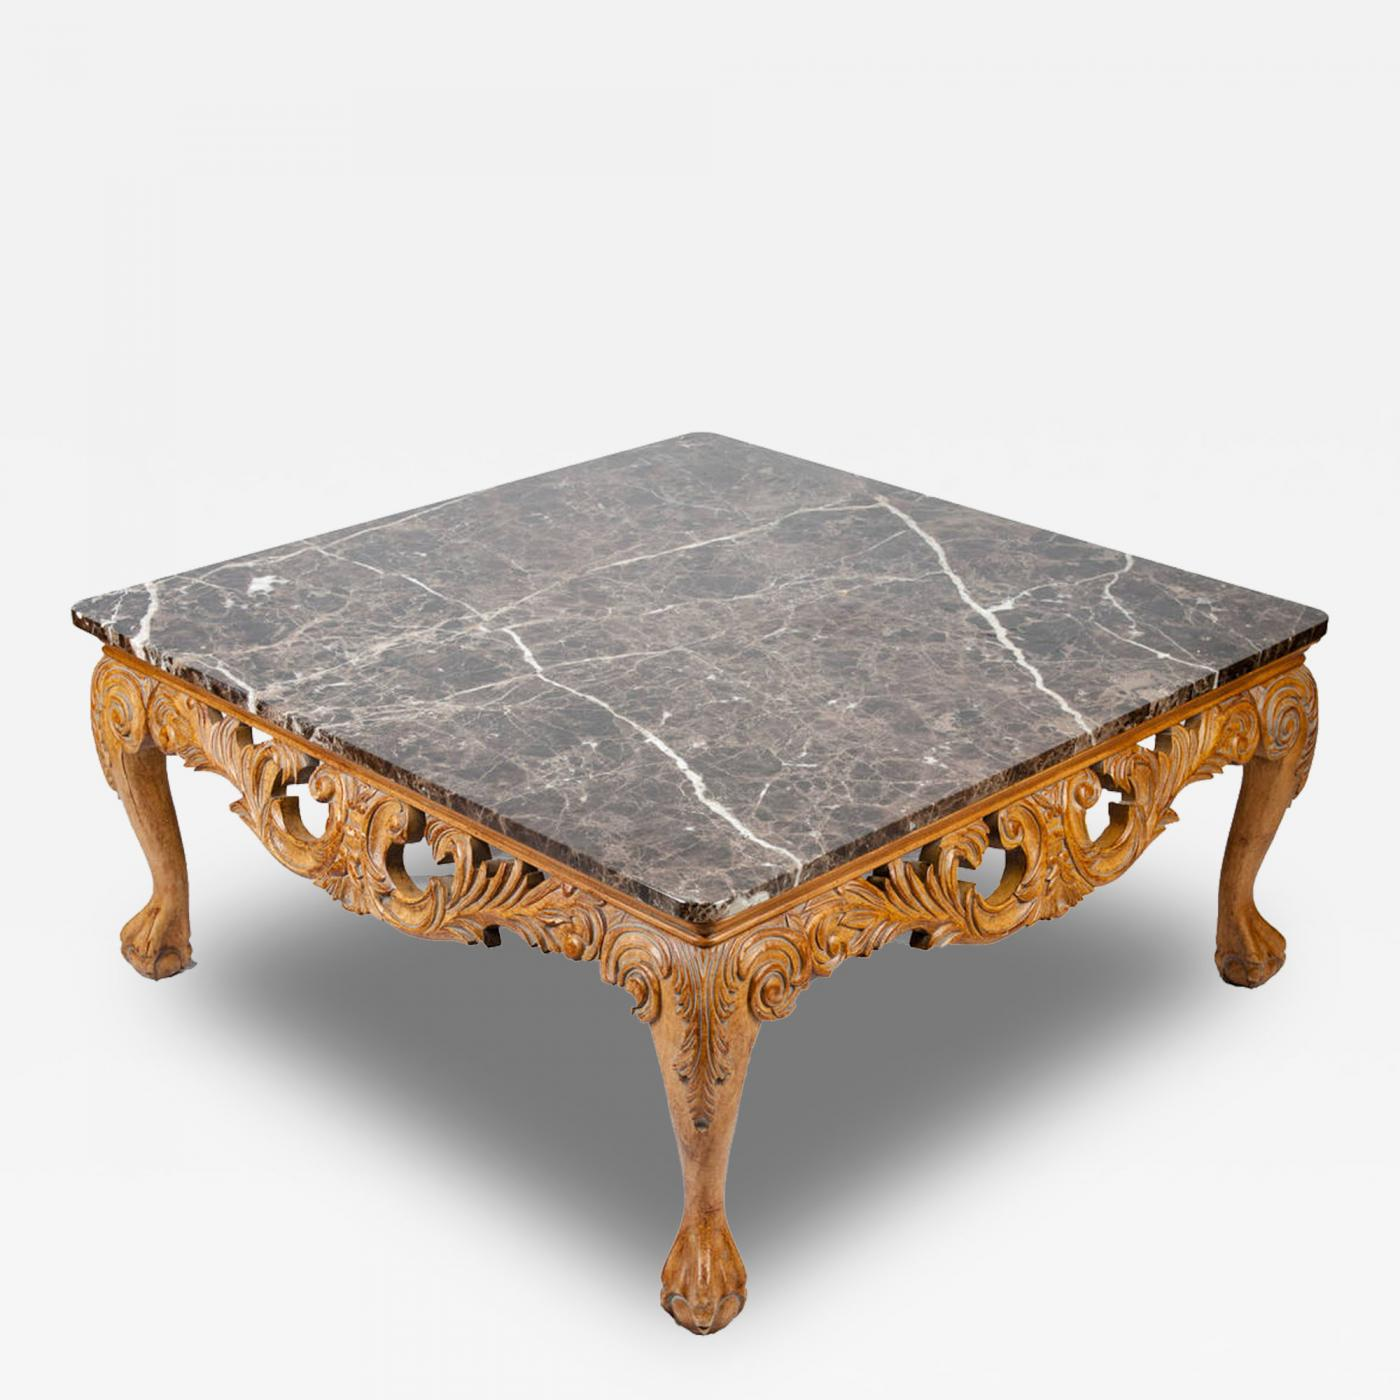 Marble Coffee Table Antique: Vintage European Marble-Top Coffee Table